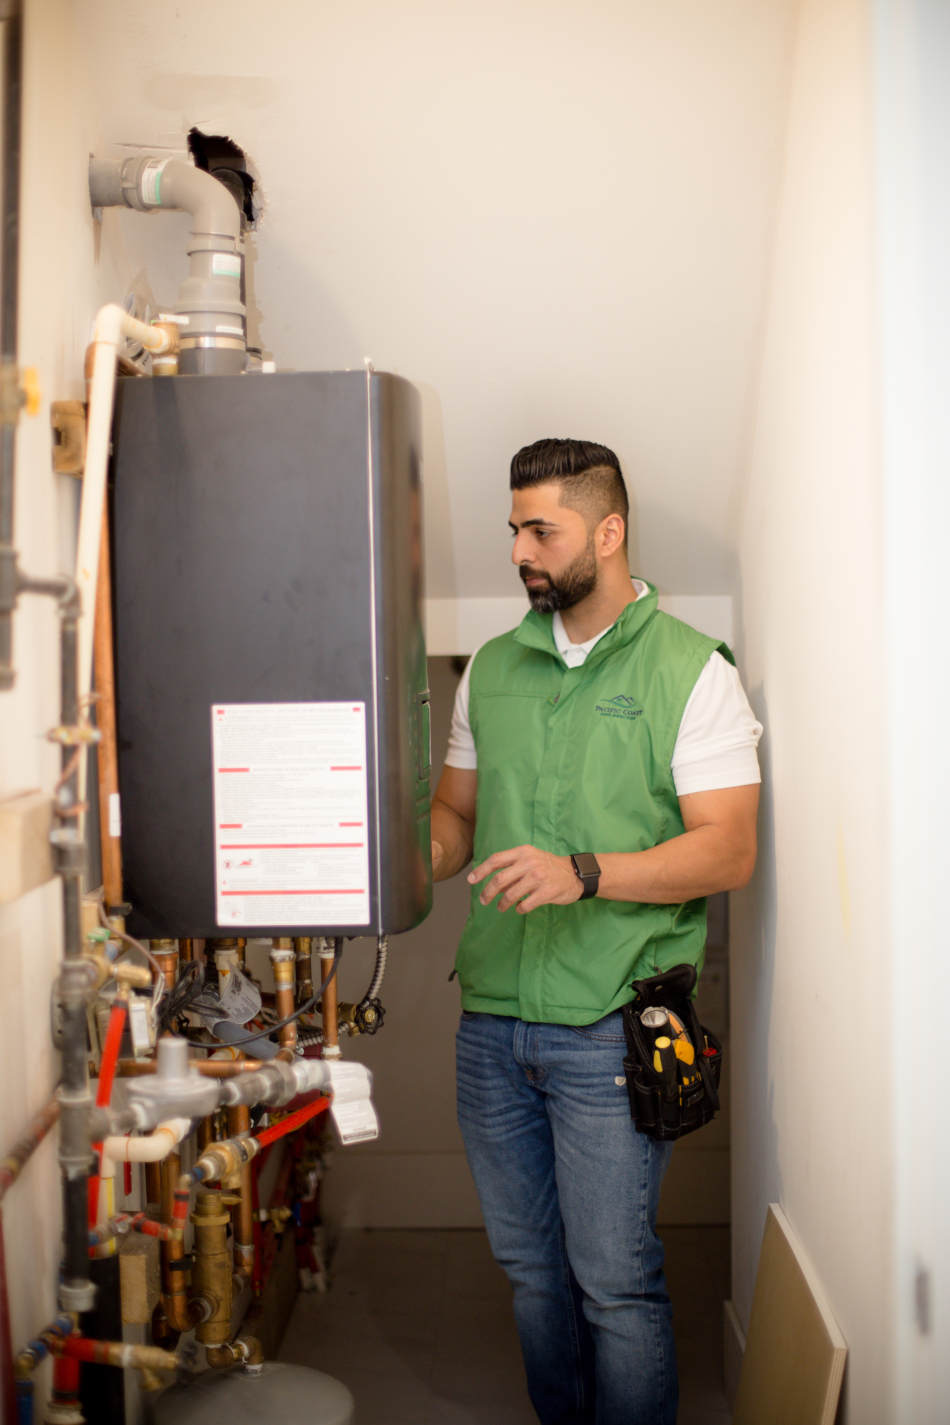 Home inspector checking hot water tank